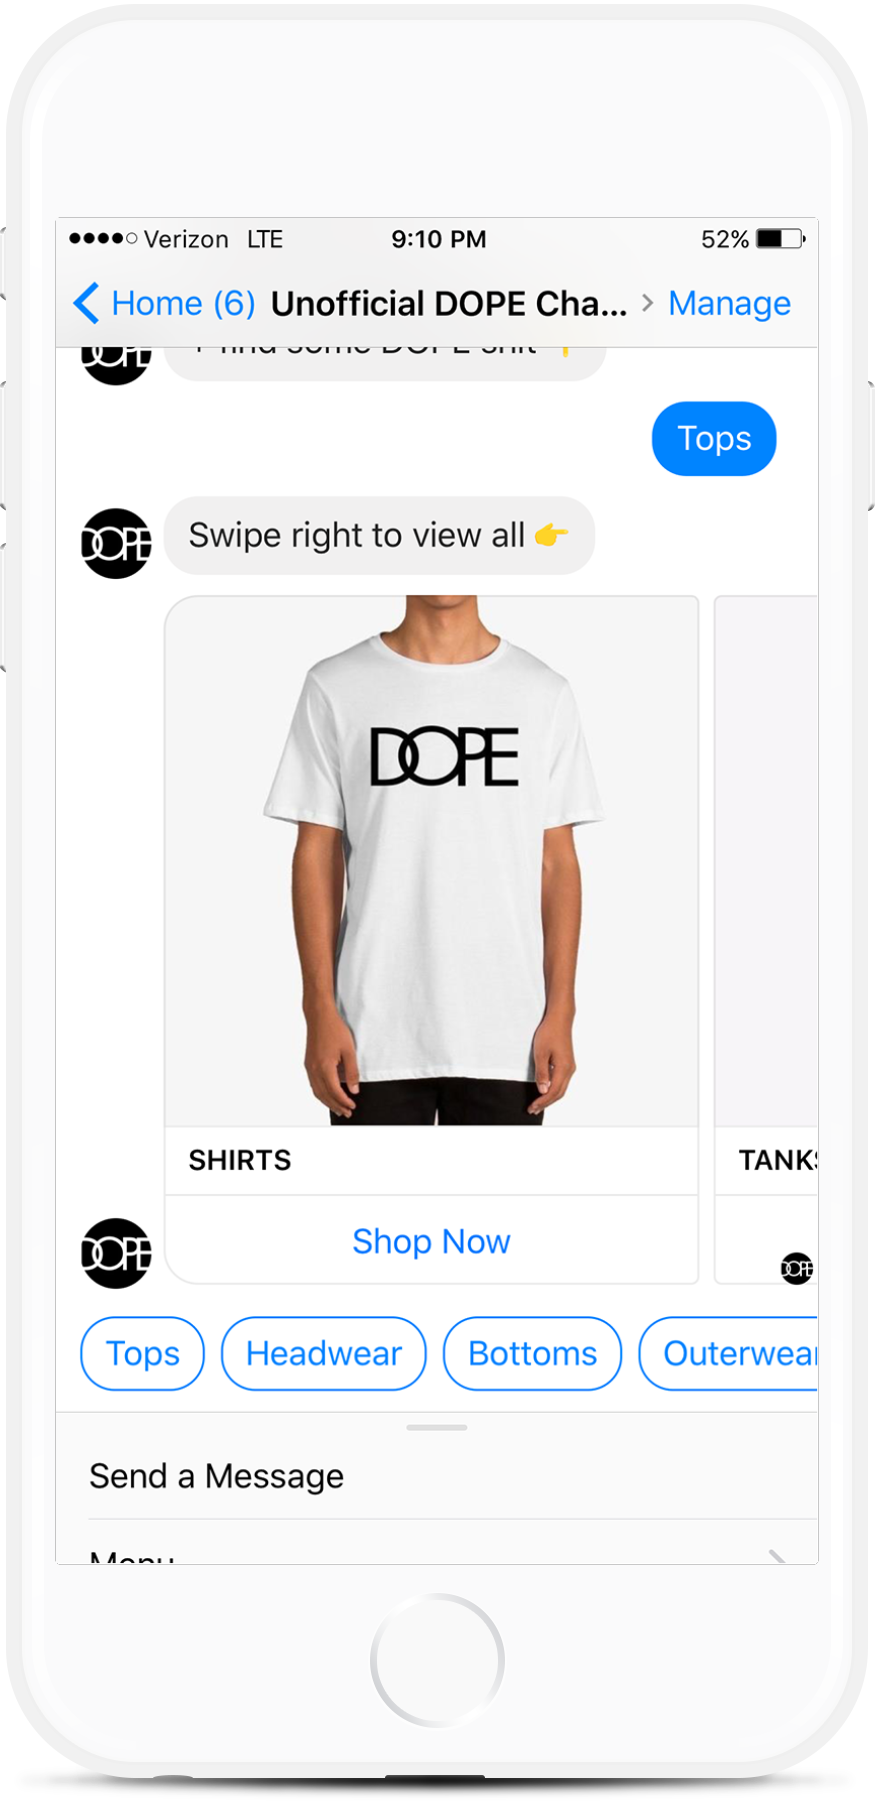 Facebook Messenger Chatbot for Clothing Retailers